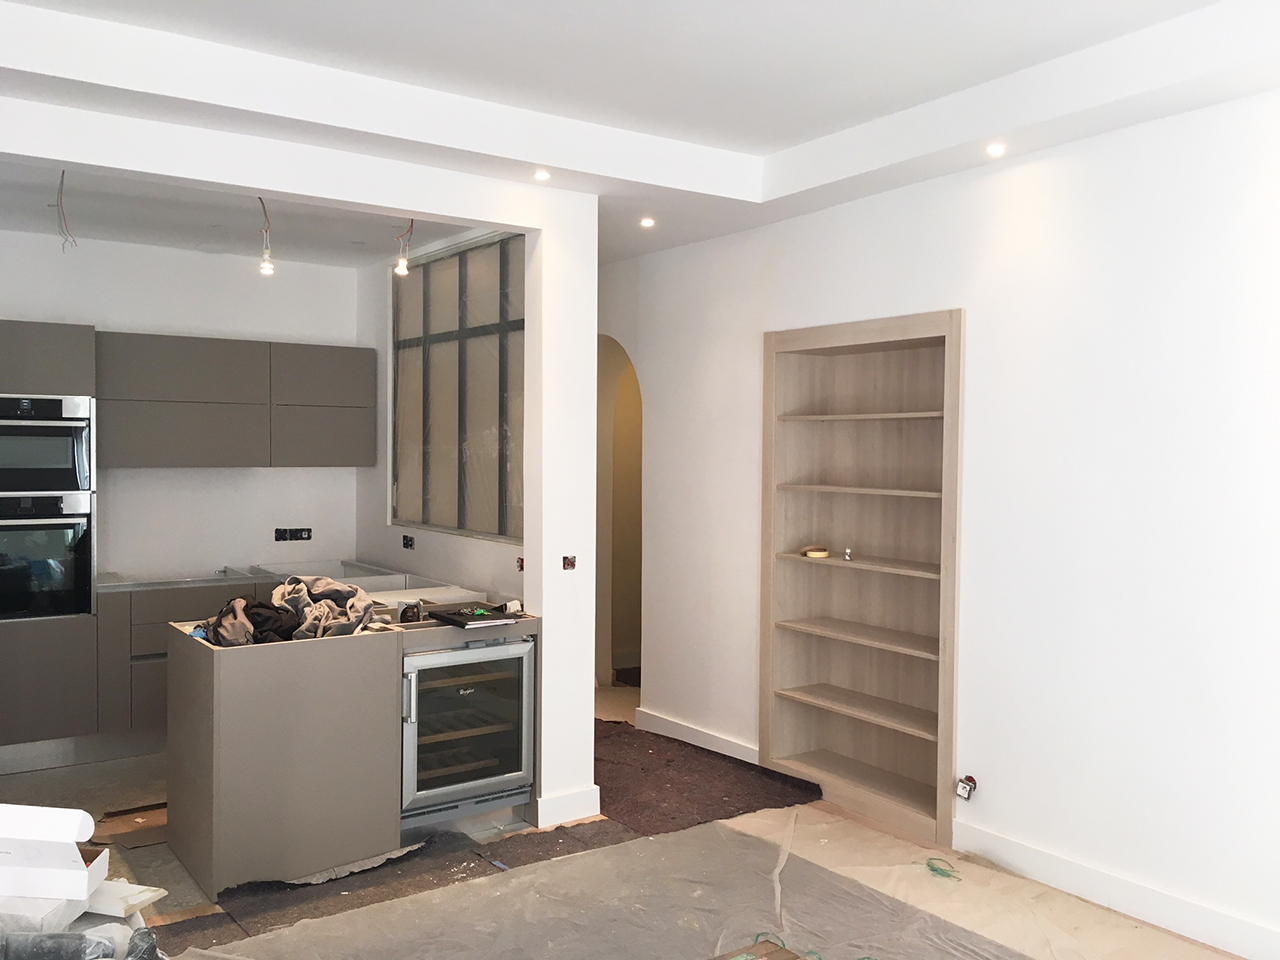 Agencement et d coration d 39 un appartement f3 nice jean for F3 appartement